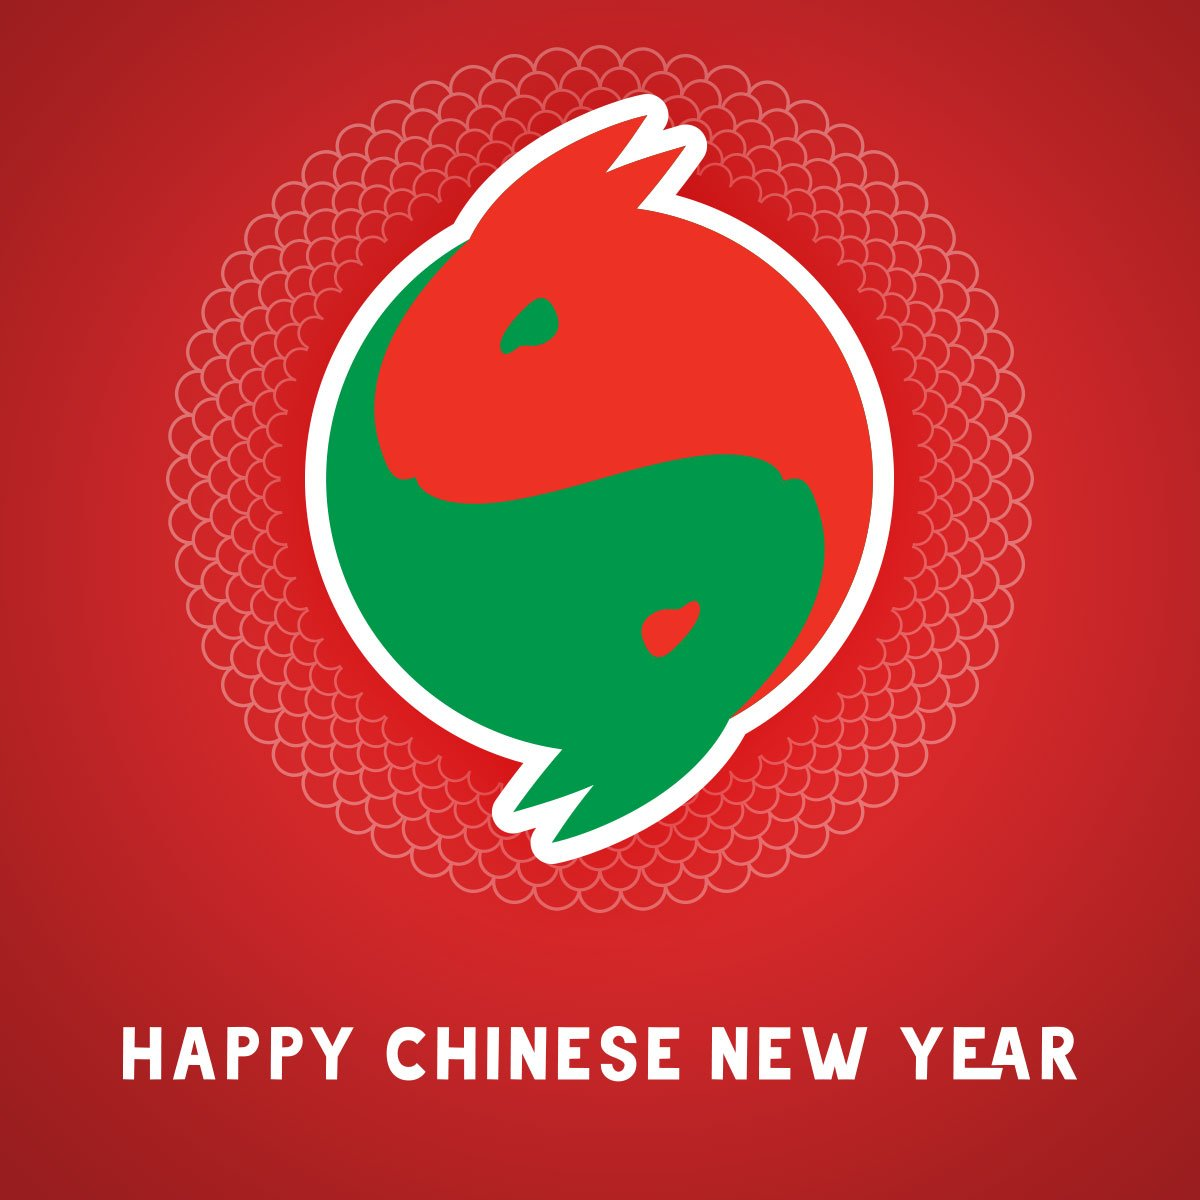 South Sydney Rabbitohs On Twitter It Might Not Be The Year Of The Rabbit But We Ll Still Be Wishing Everybody A Happy Chinese New Year Gorabbitohs Yearoftherabbitoh Https T Co Ejjx1m63wn